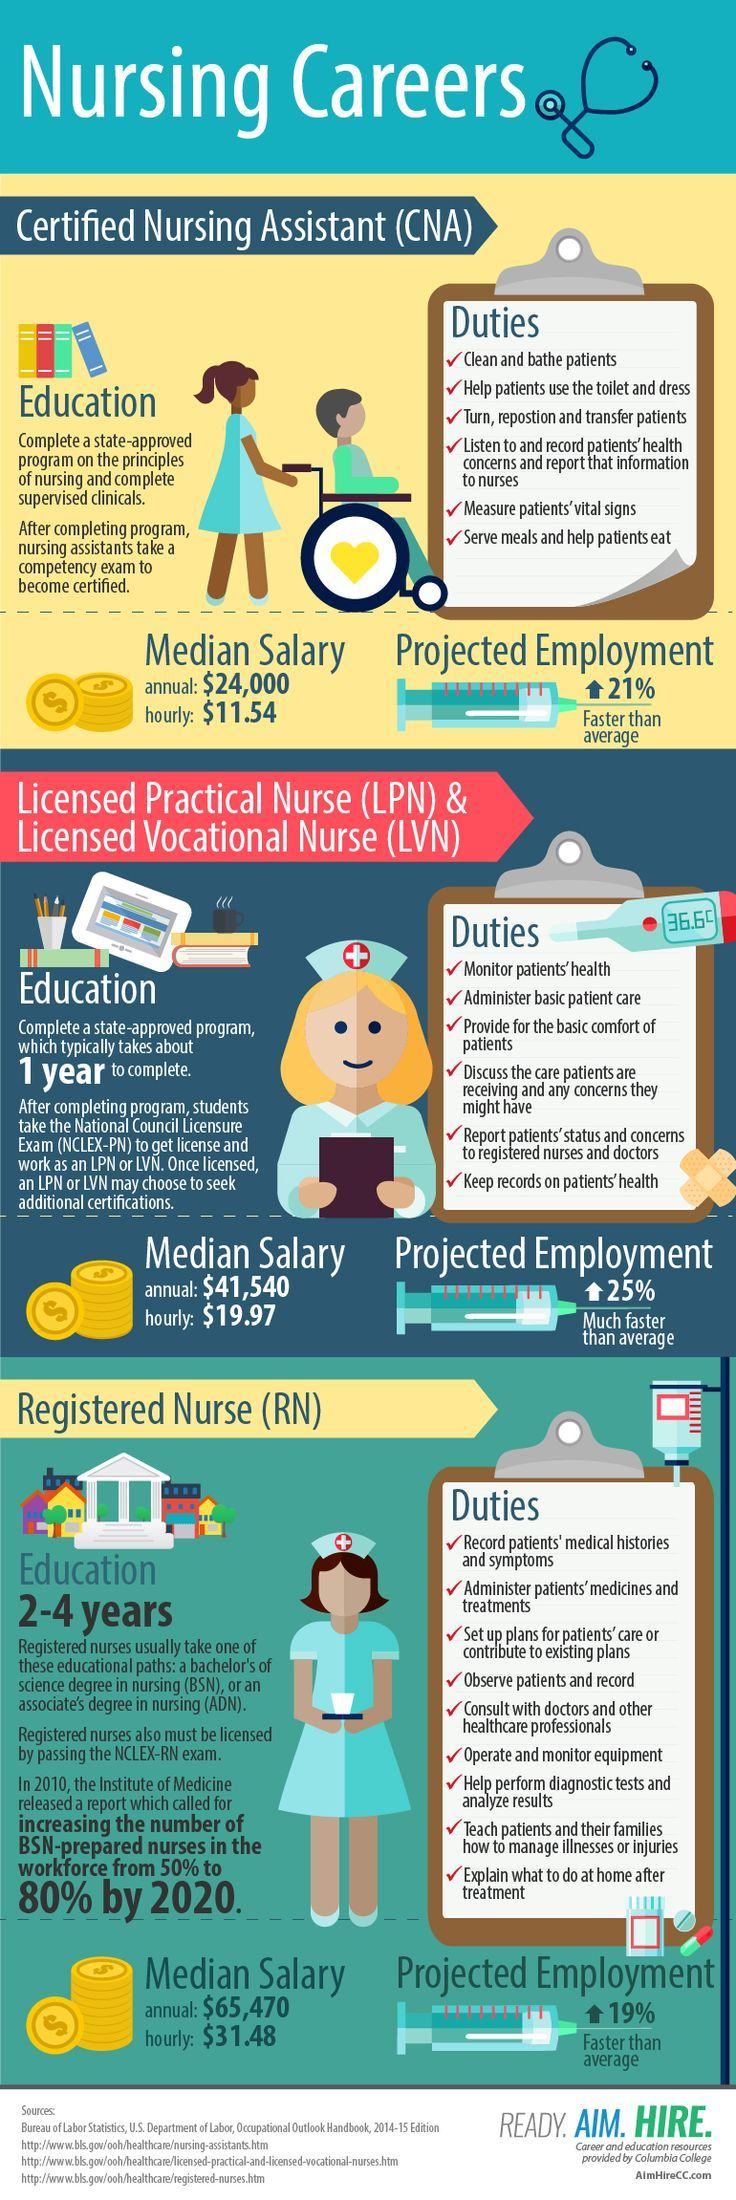 25 Best Ideas About Nursing Leadership On Pinterest